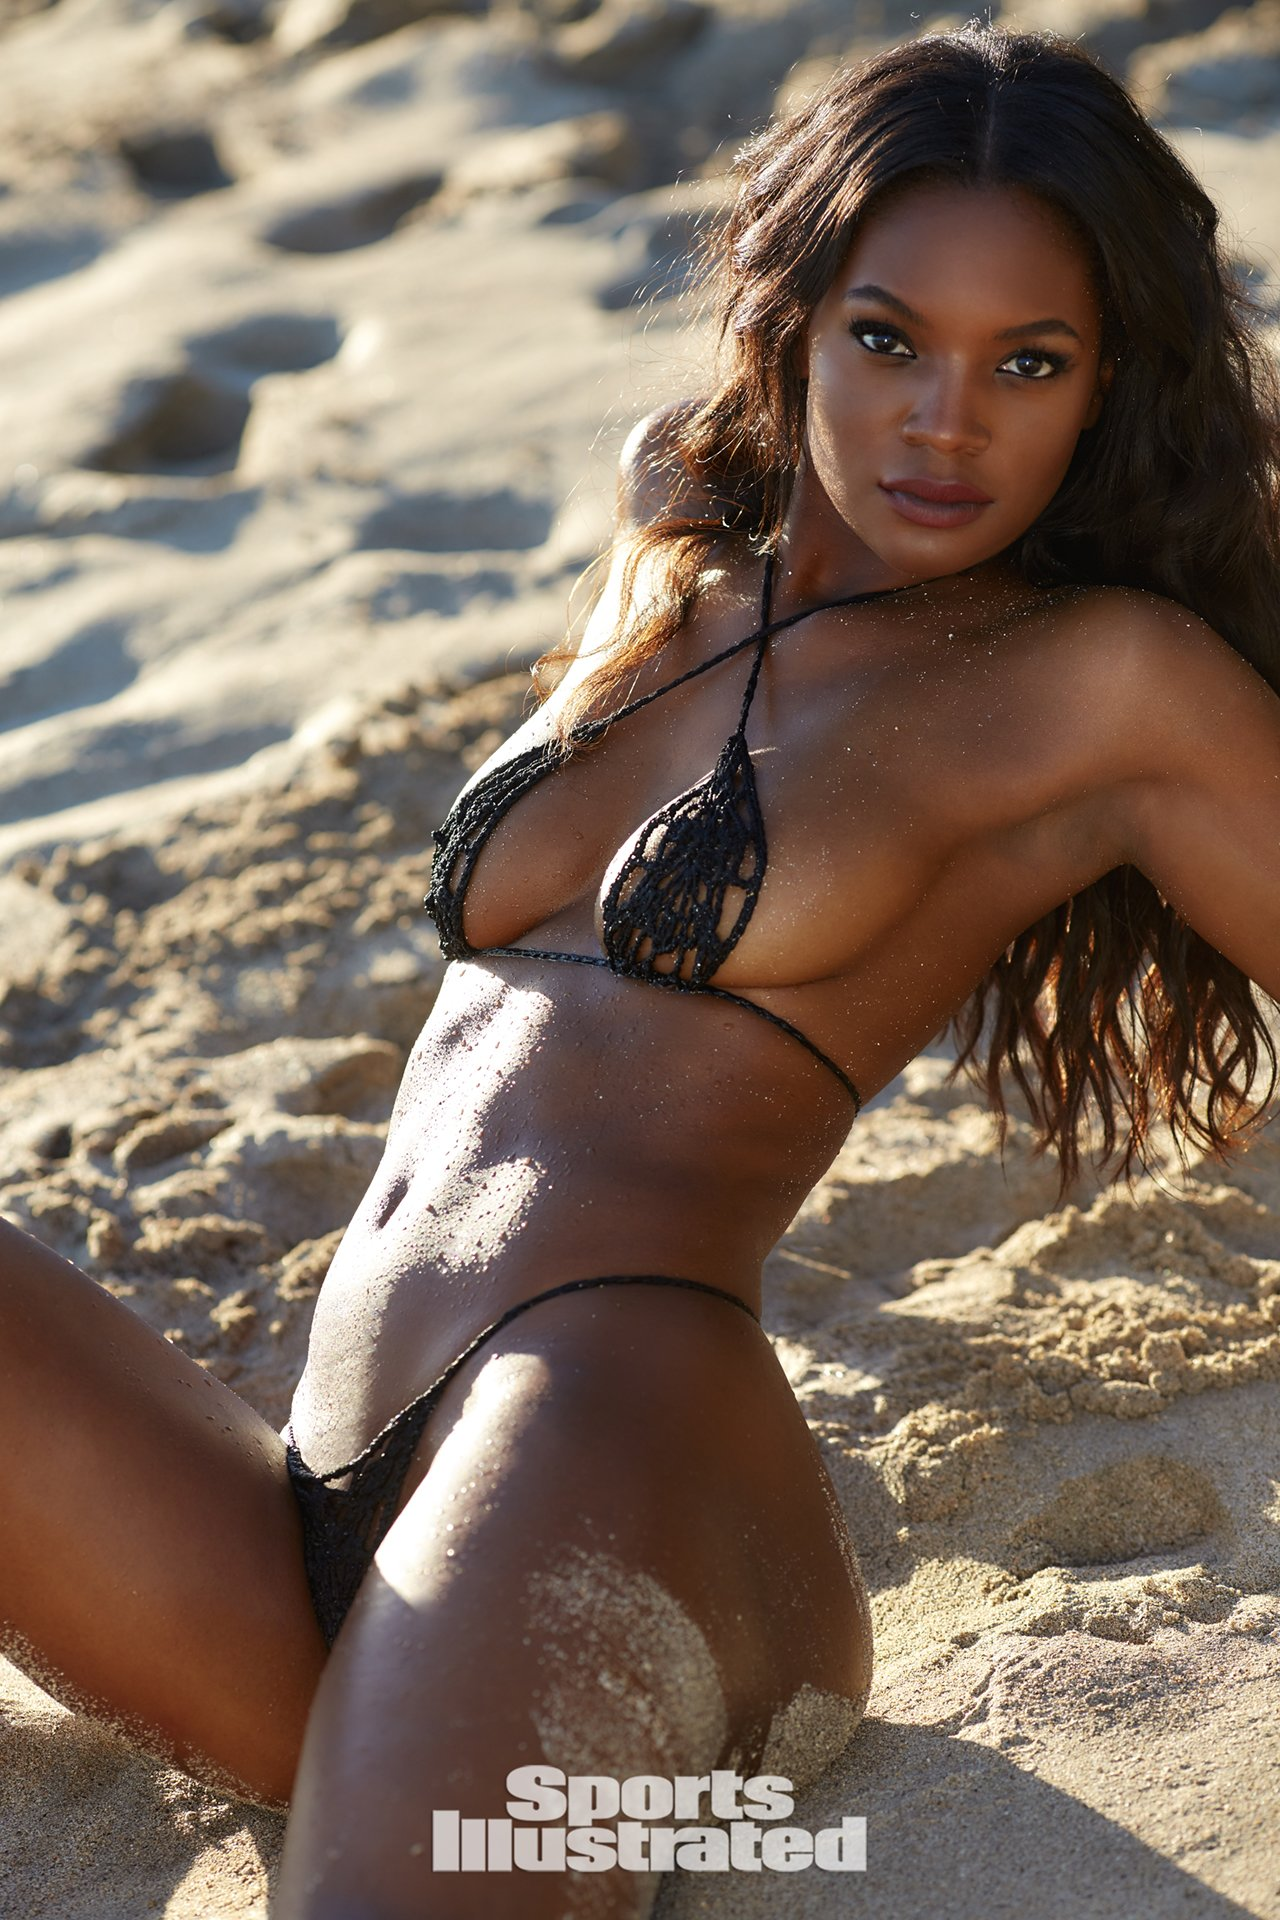 Sports Illustrated Swimsuit Issue 2018 (5).jpg